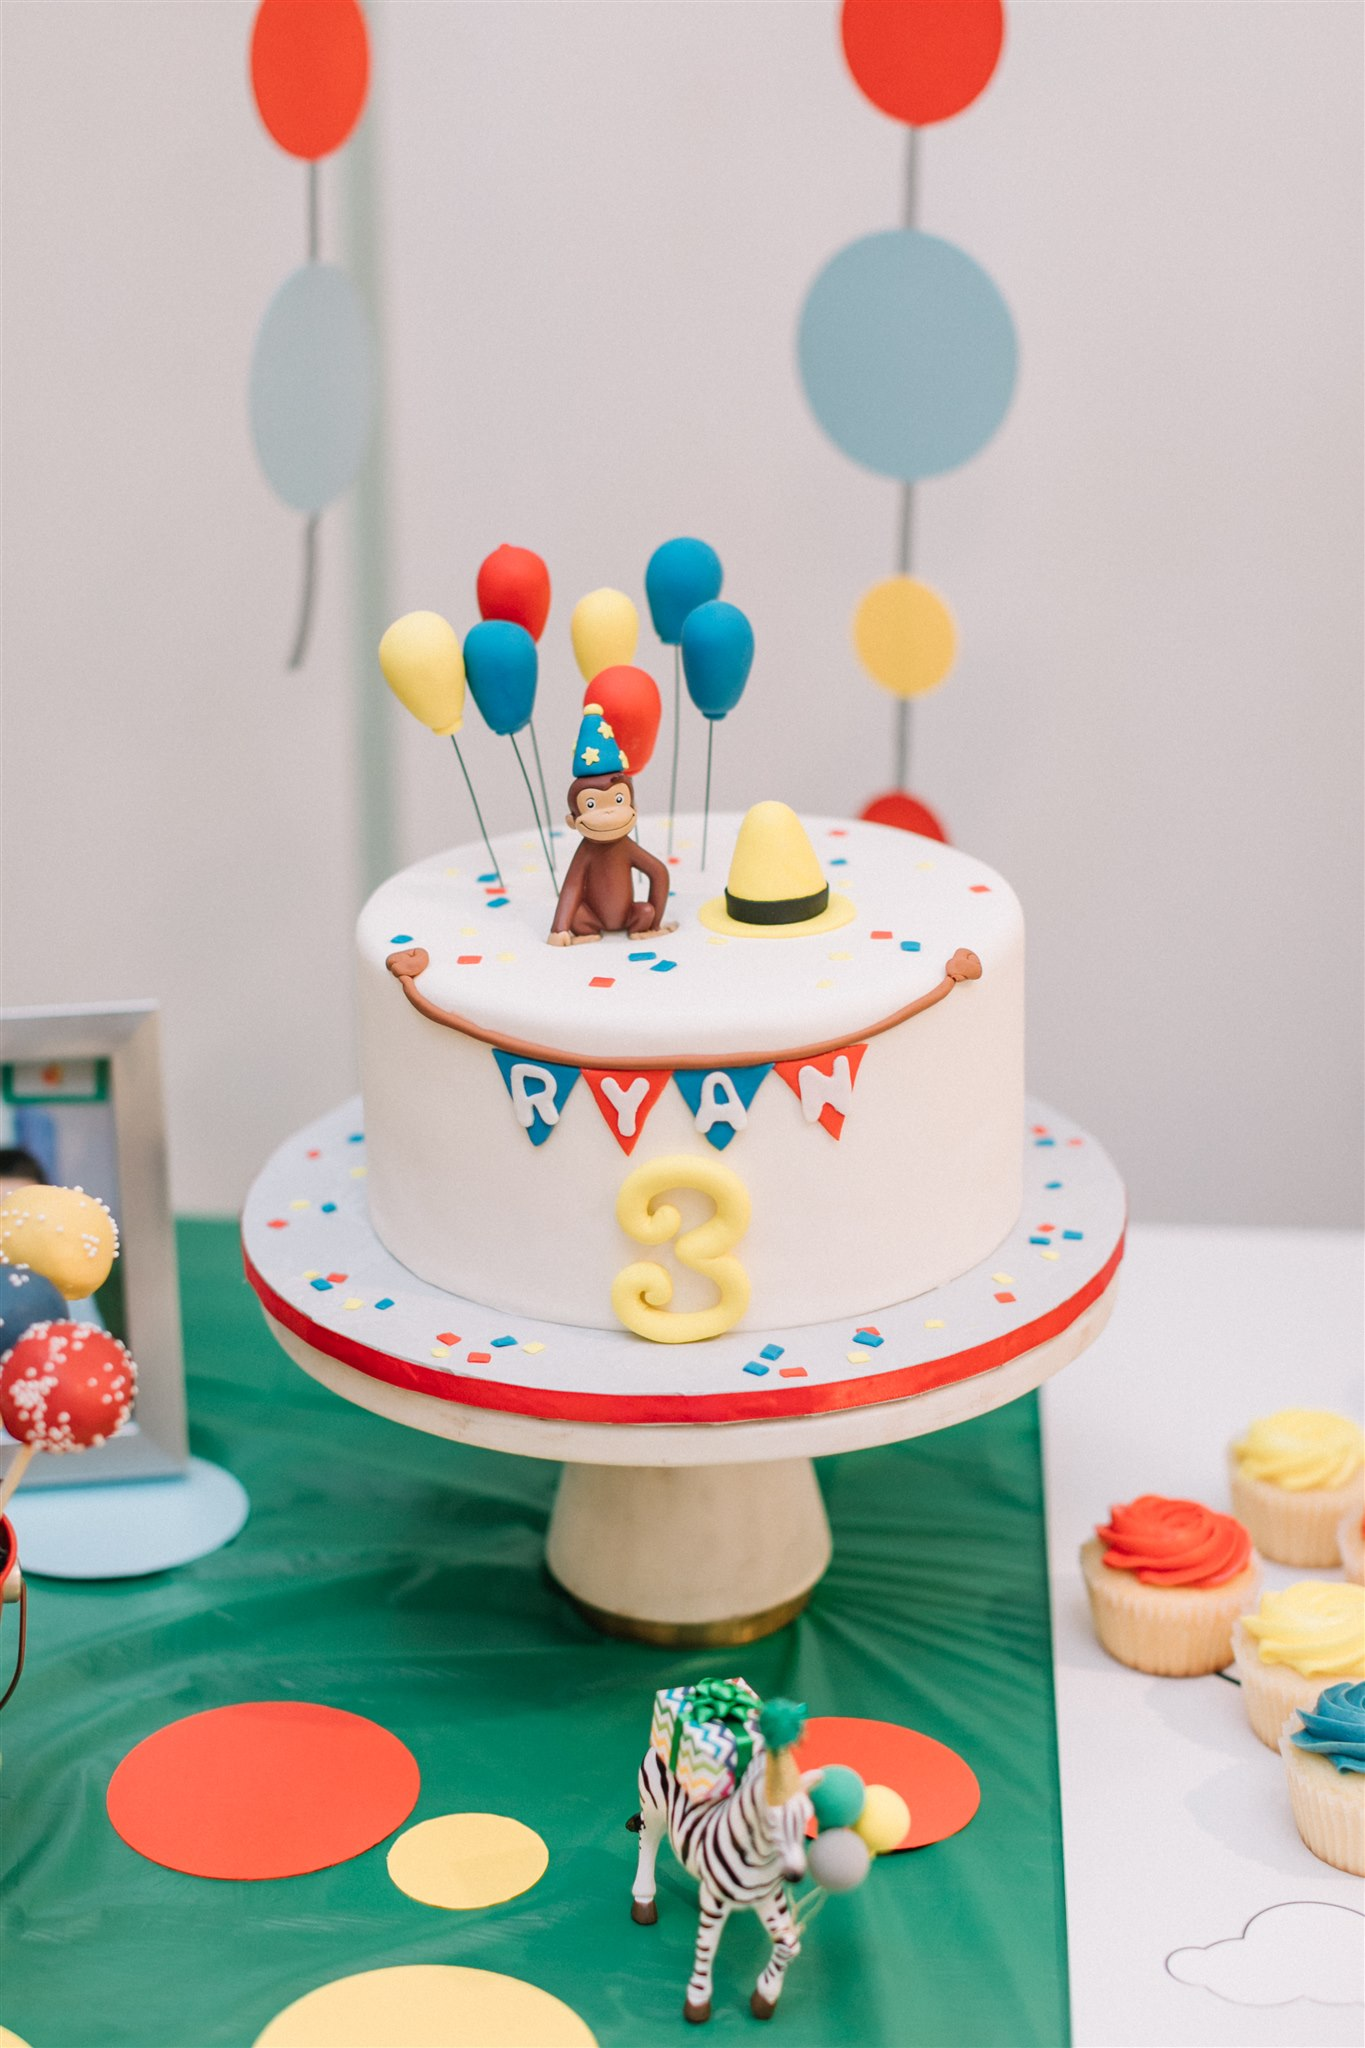 Ryan's 3rd Birthday - Kidspacelohilani-photography-ryans-thir